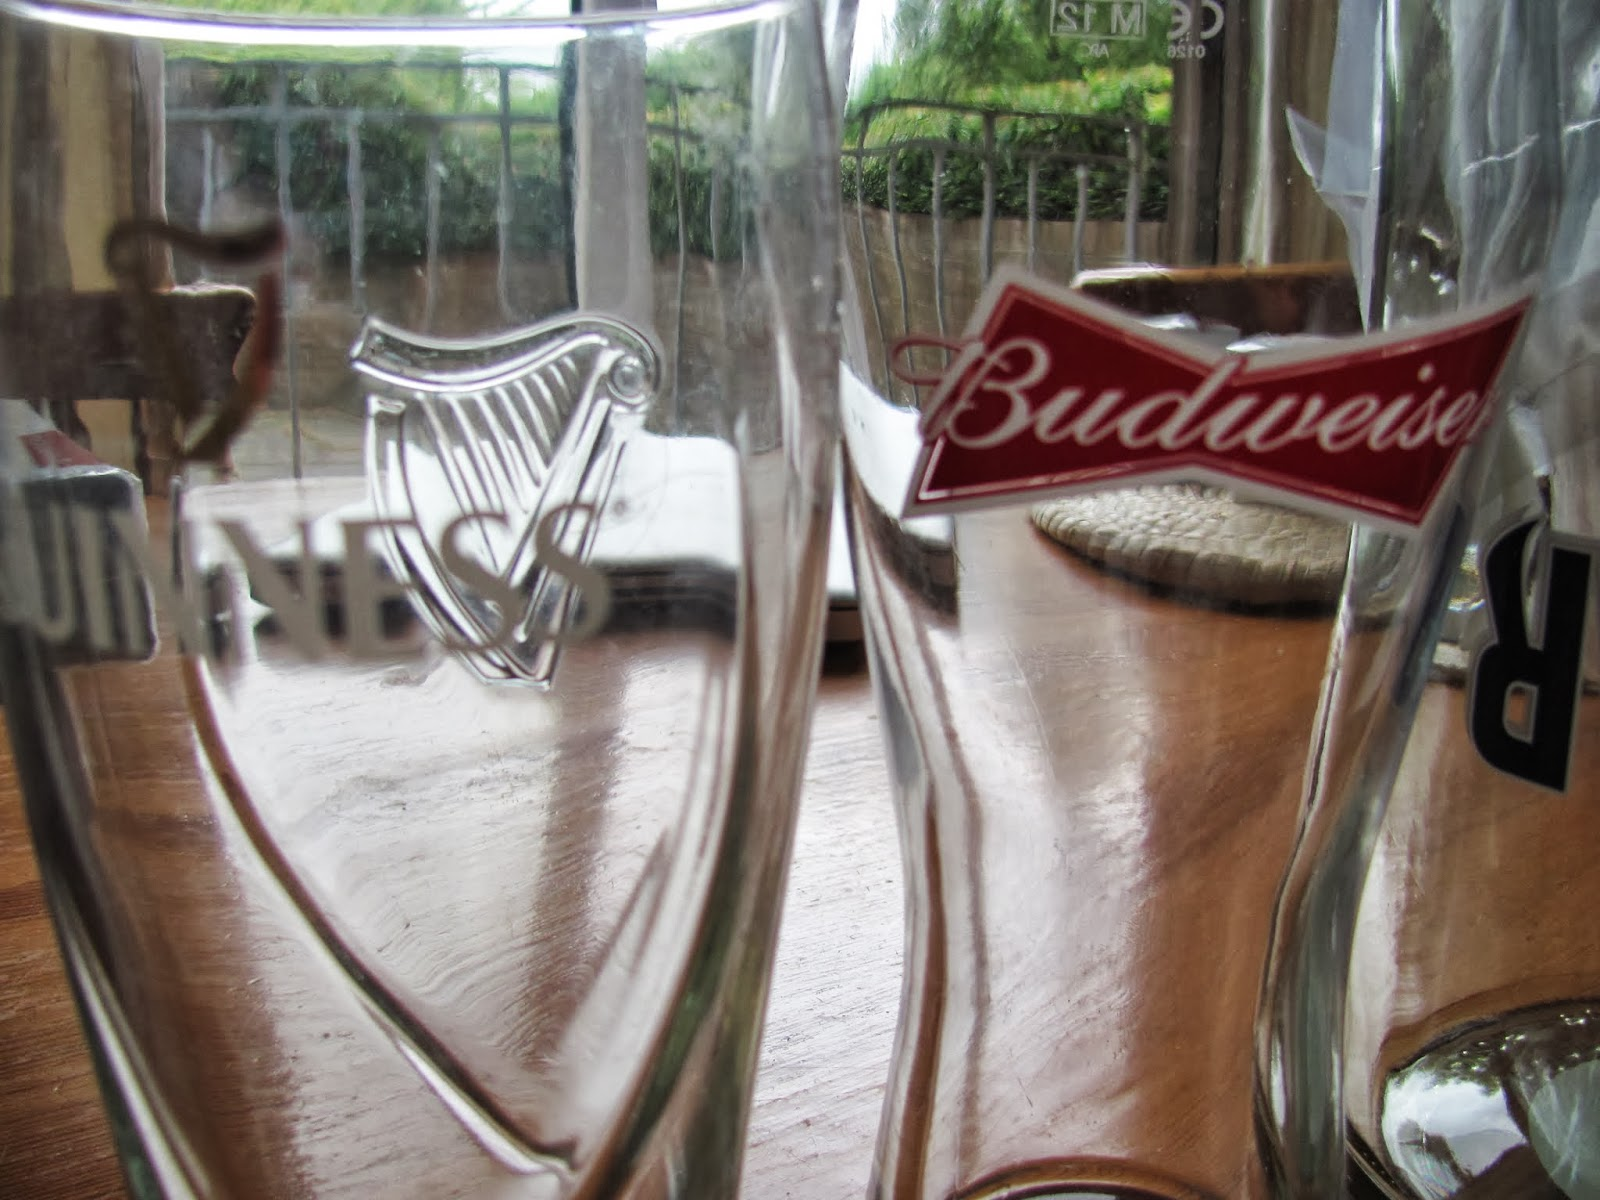 An empty Guinness glass and an empty Budweiser Glass on our kitchen table in Dublin, Ireland